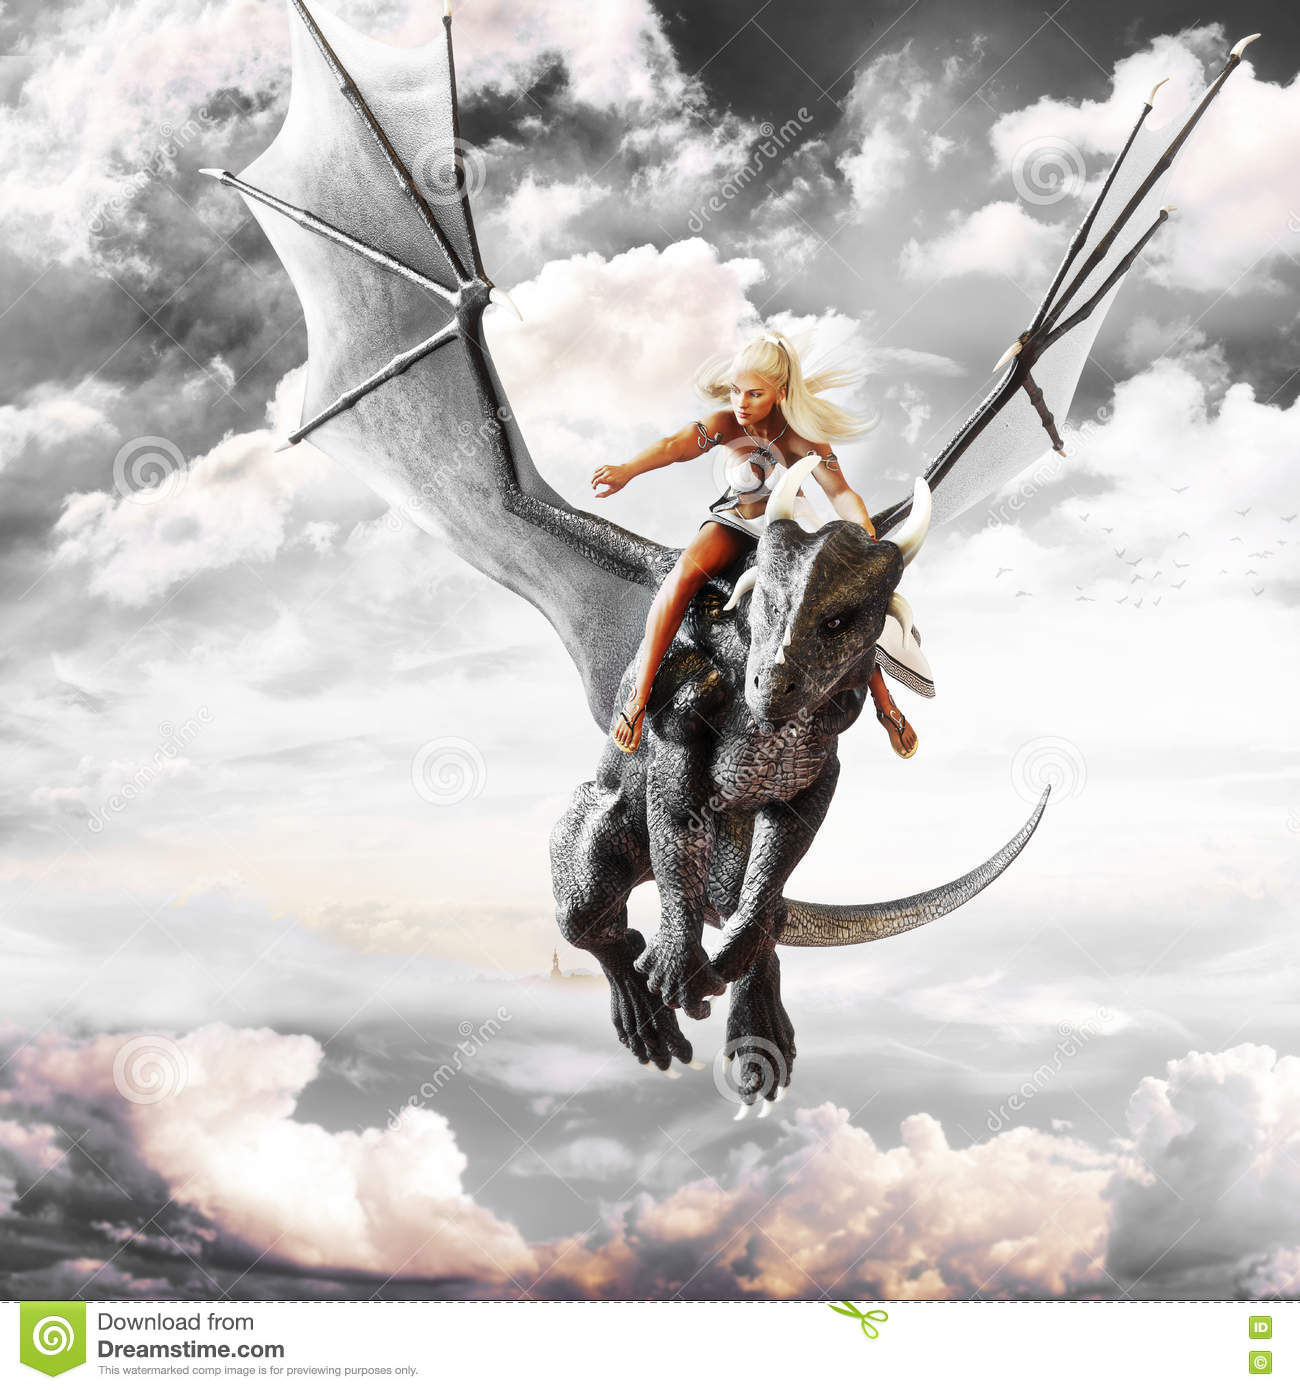 Dragon rider, Blonde female riding the back of a black flying dragon.